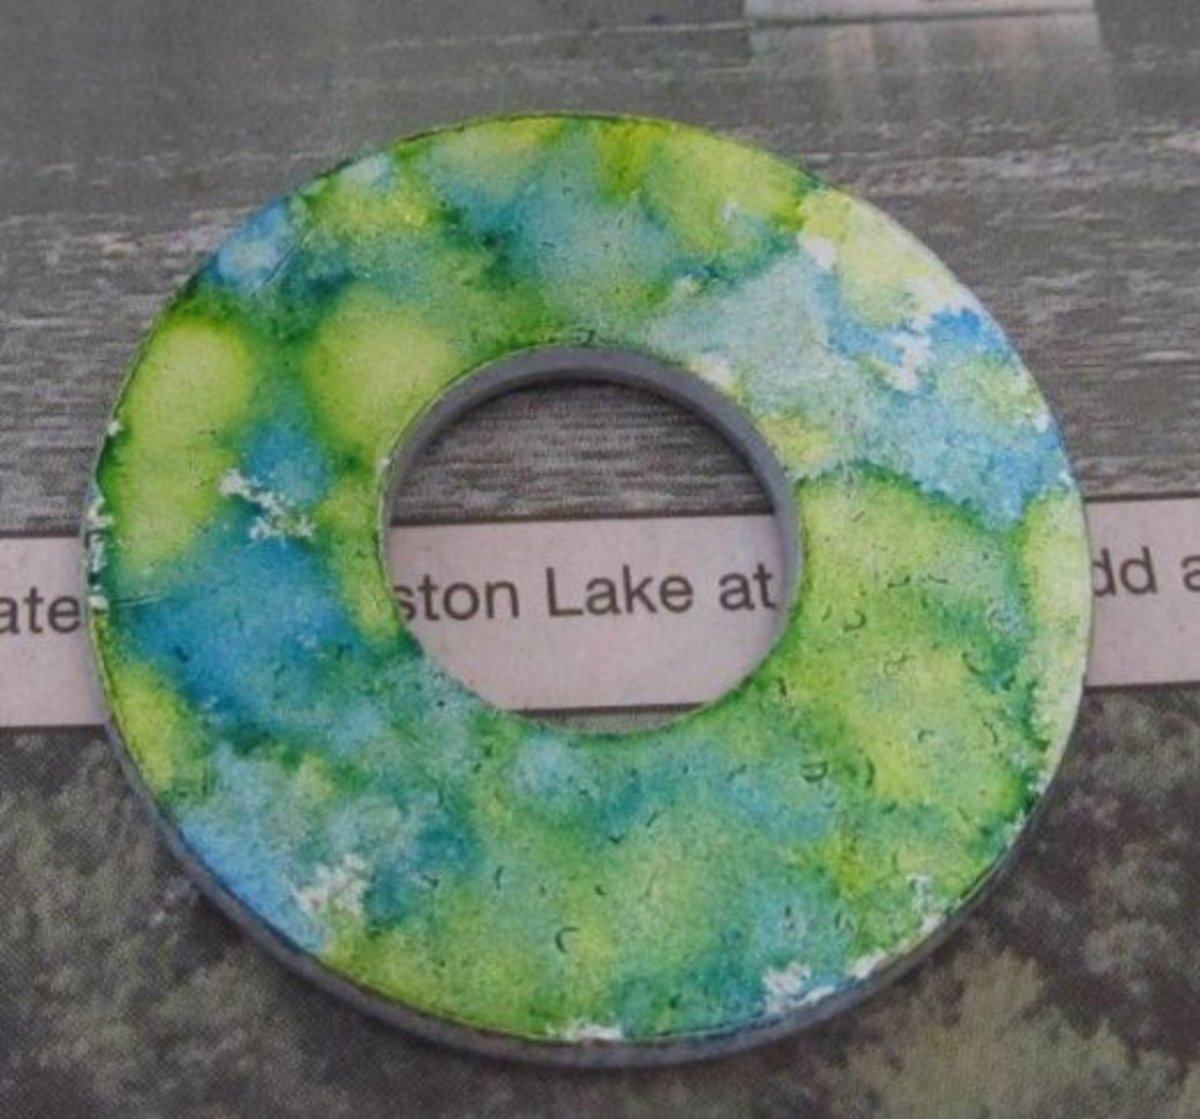 This is the finished metal washer after applying alcohol ink.